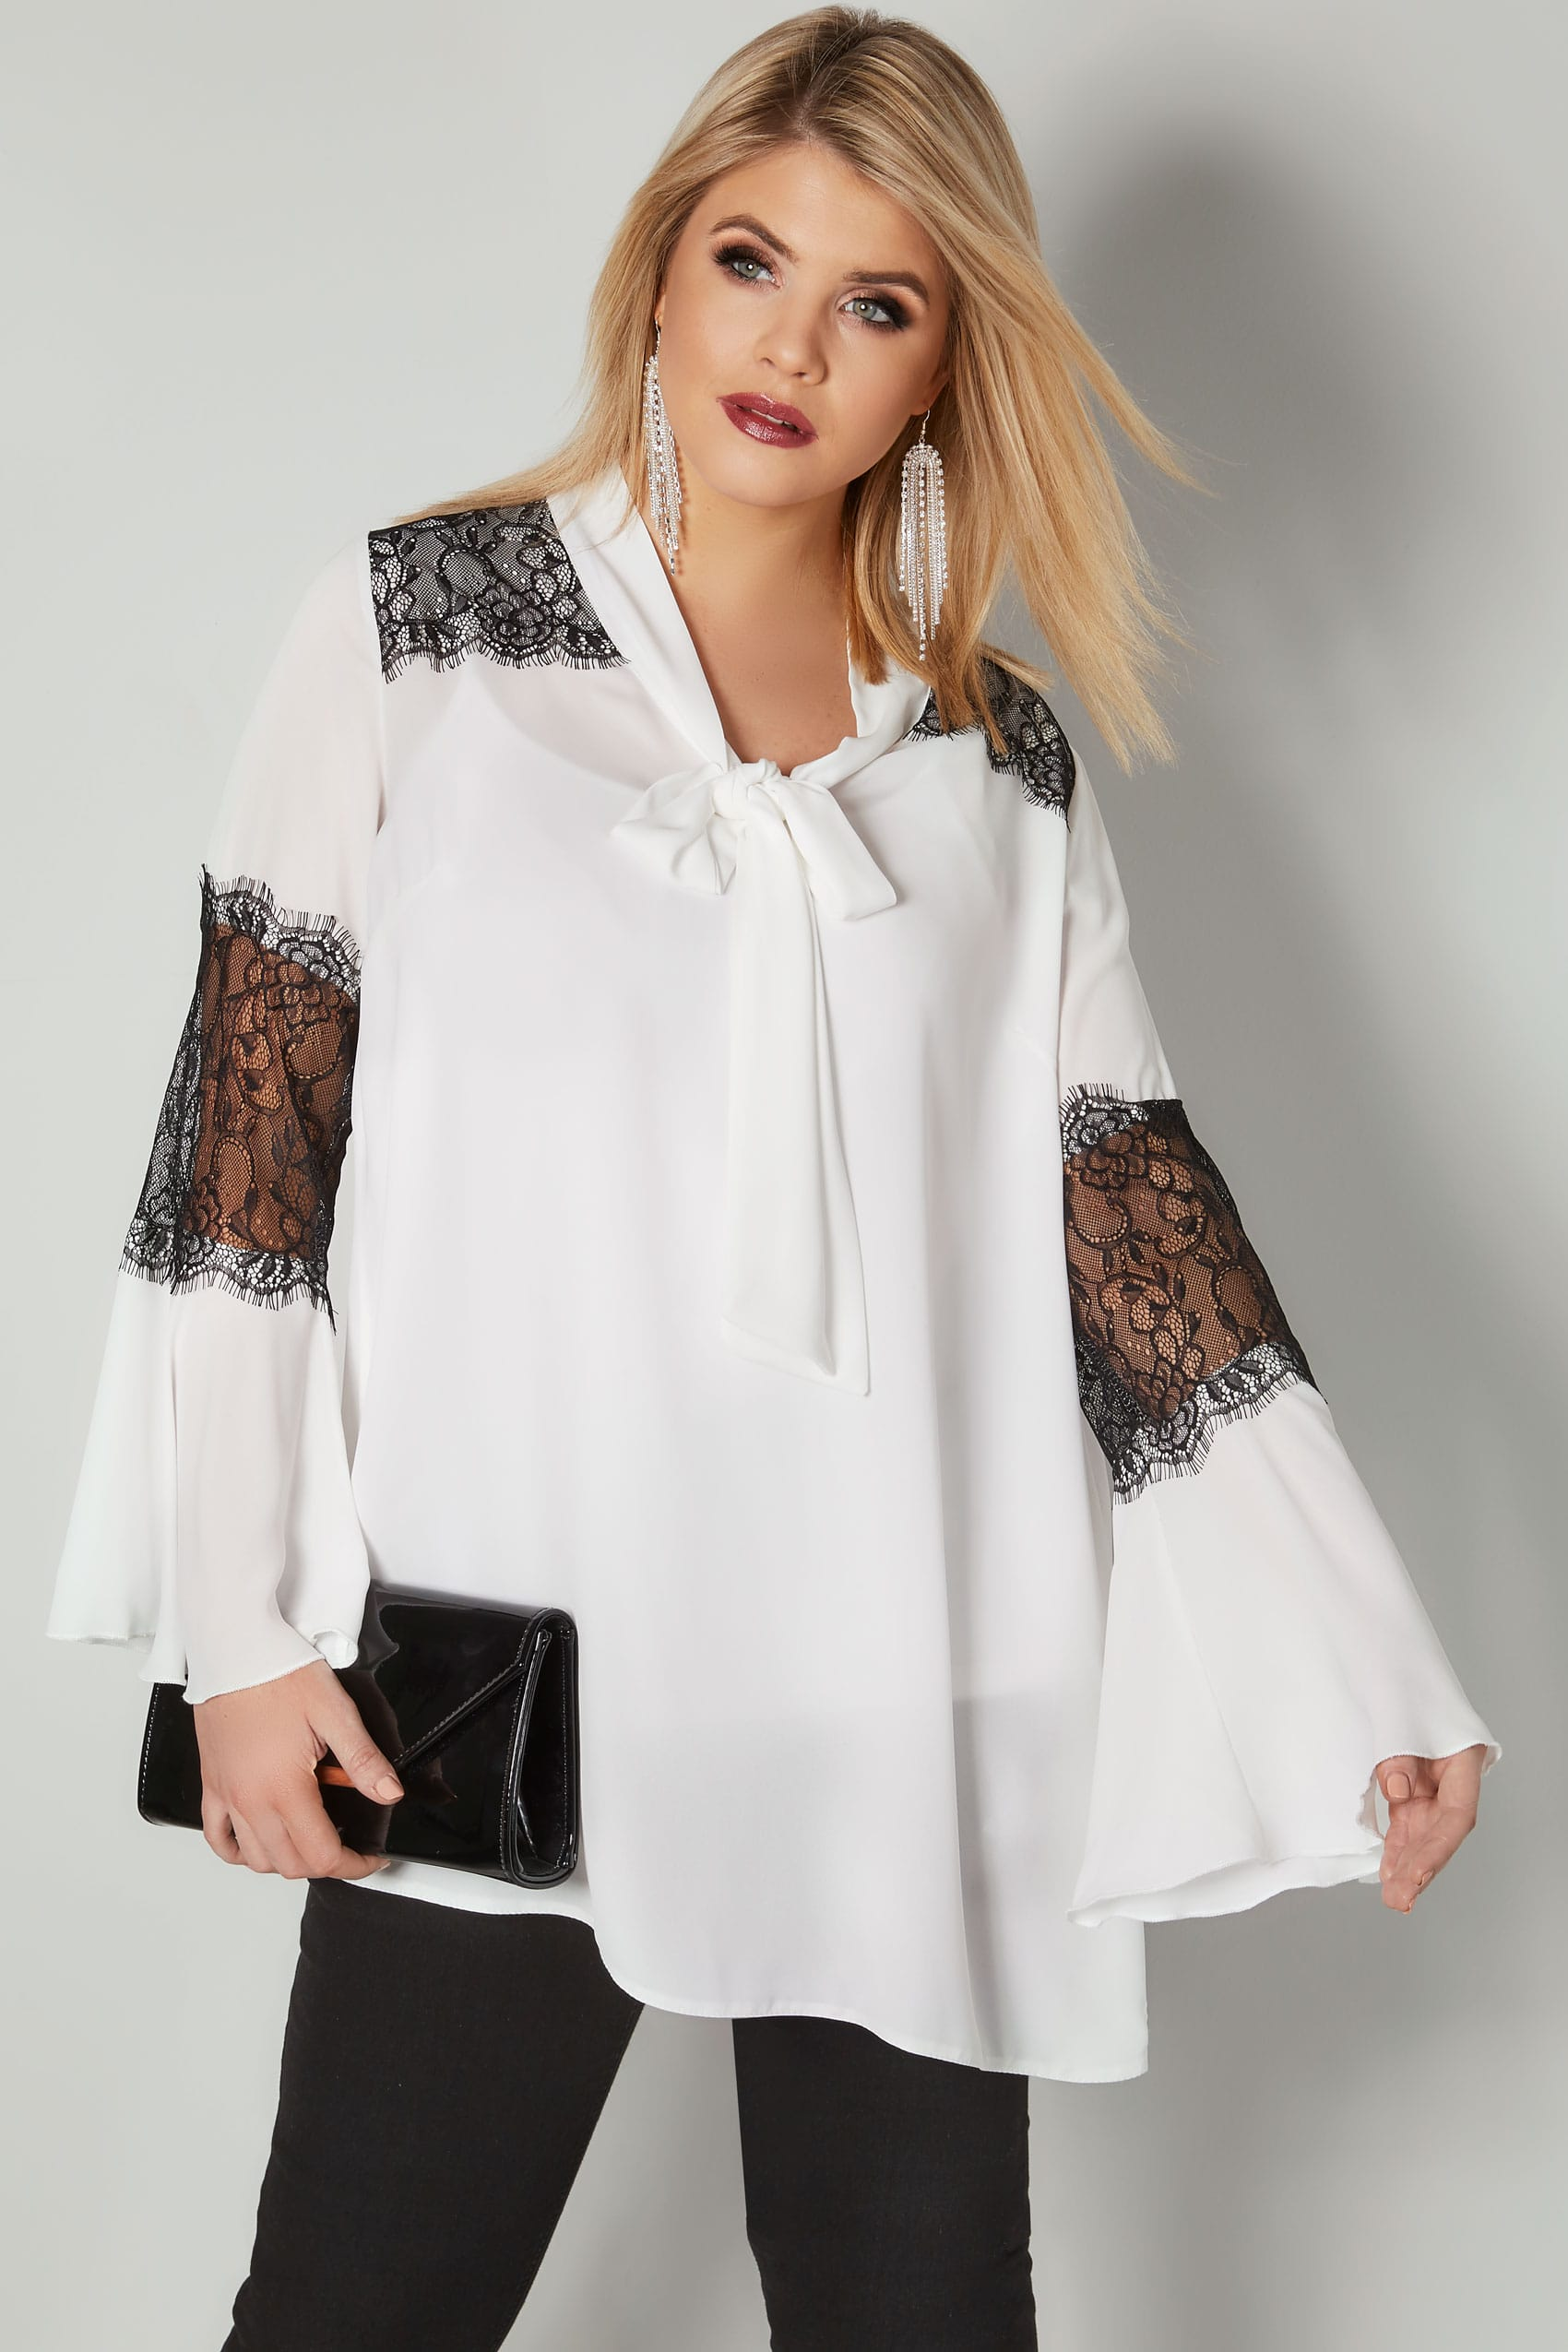 e88a943c2cdf YOURS LONDON White & Black Pussy Bow Chiffon Blouse With Lace ...